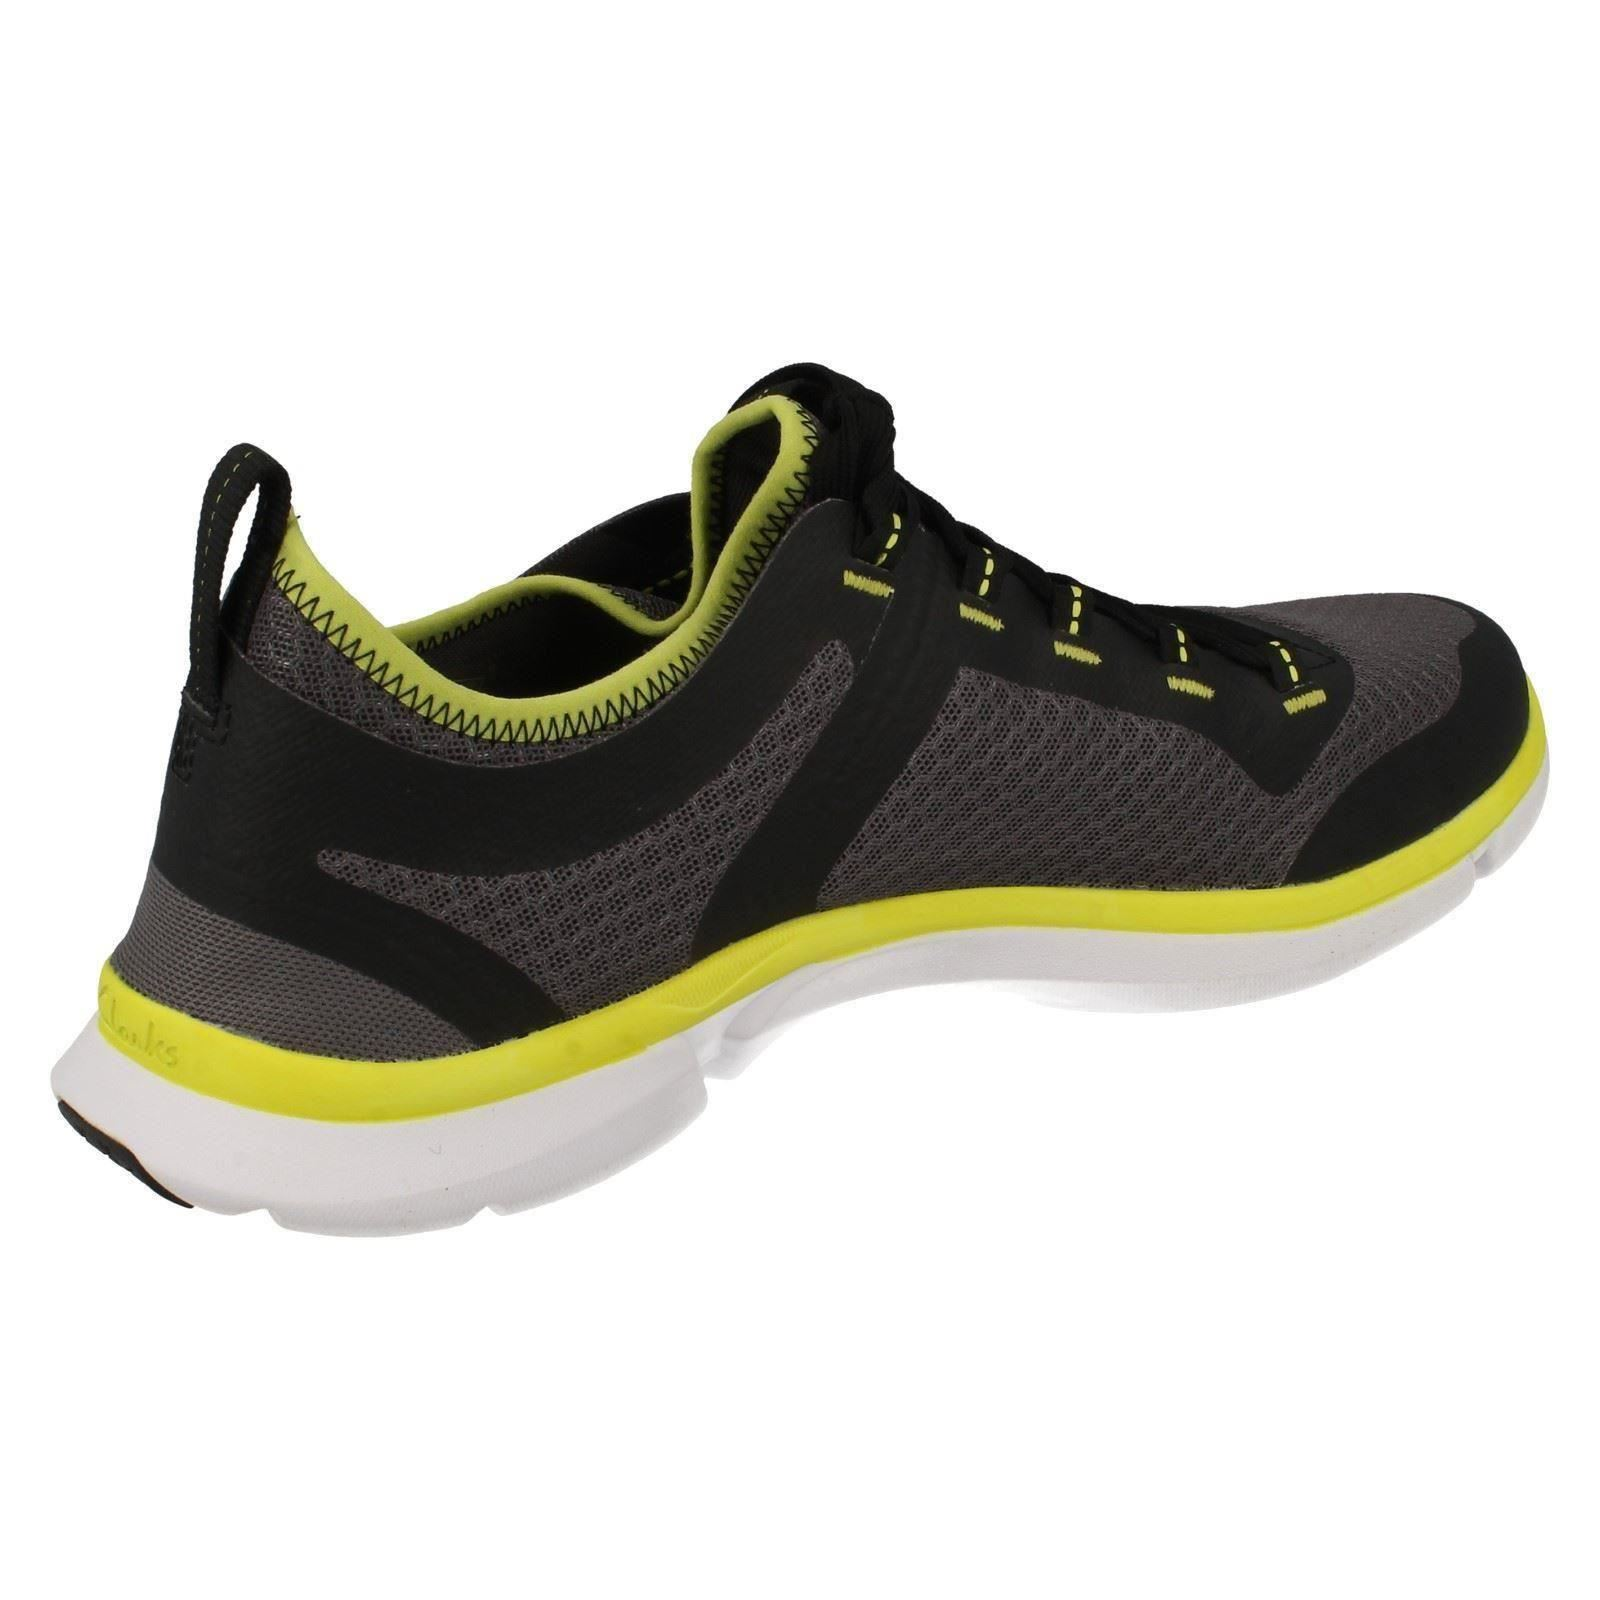 Mens-Clarks-Triken-Active-Casual-Trainers thumbnail 6